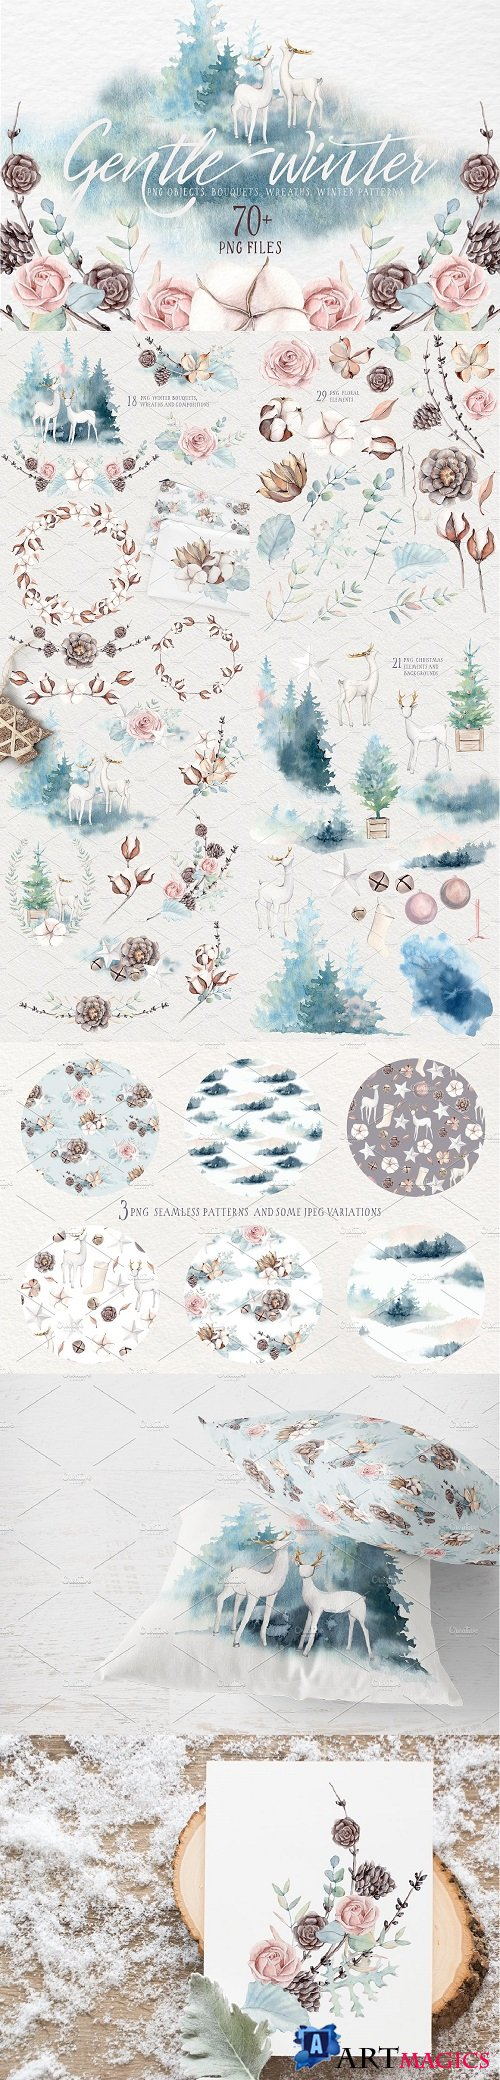 GENTLE WINTER Watercolor Collection - 2034307